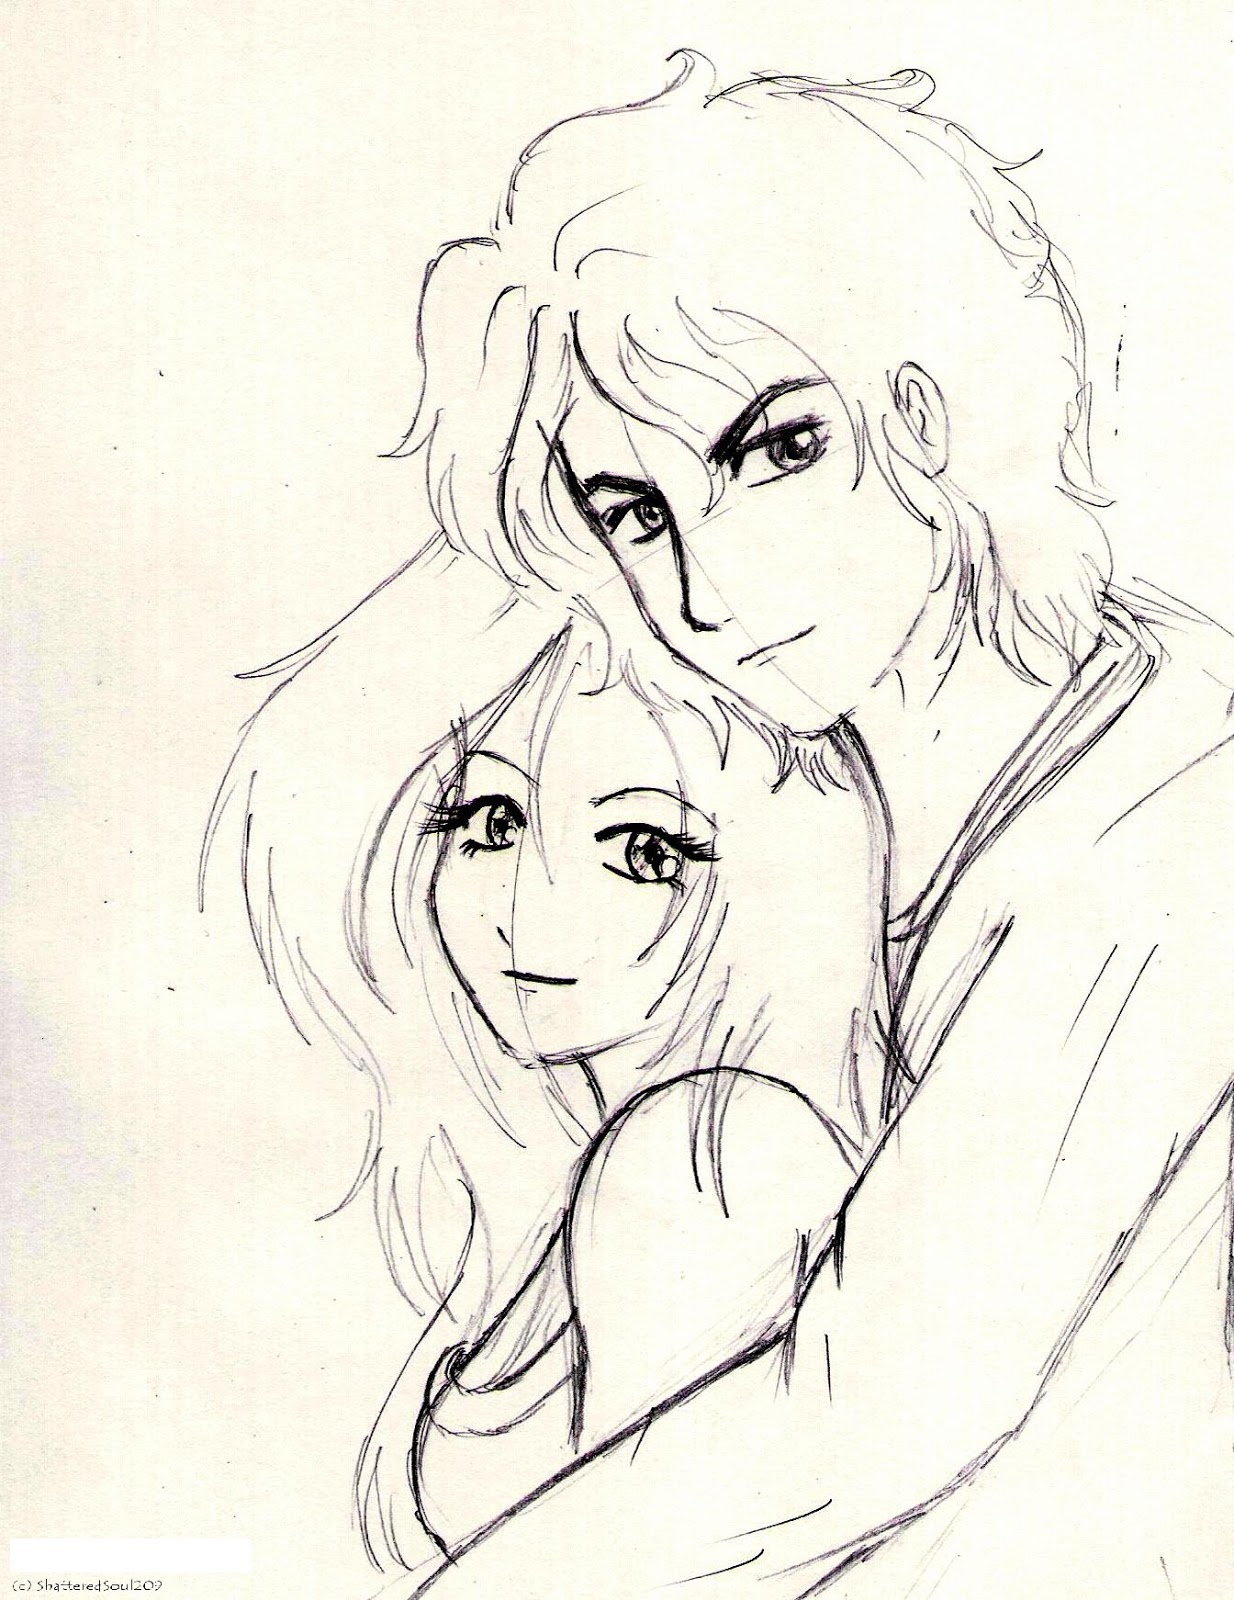 1234x1600 Sad Boy And Girl Pencil Sketch Very Lovely Love Pic Sketch Sad Boy